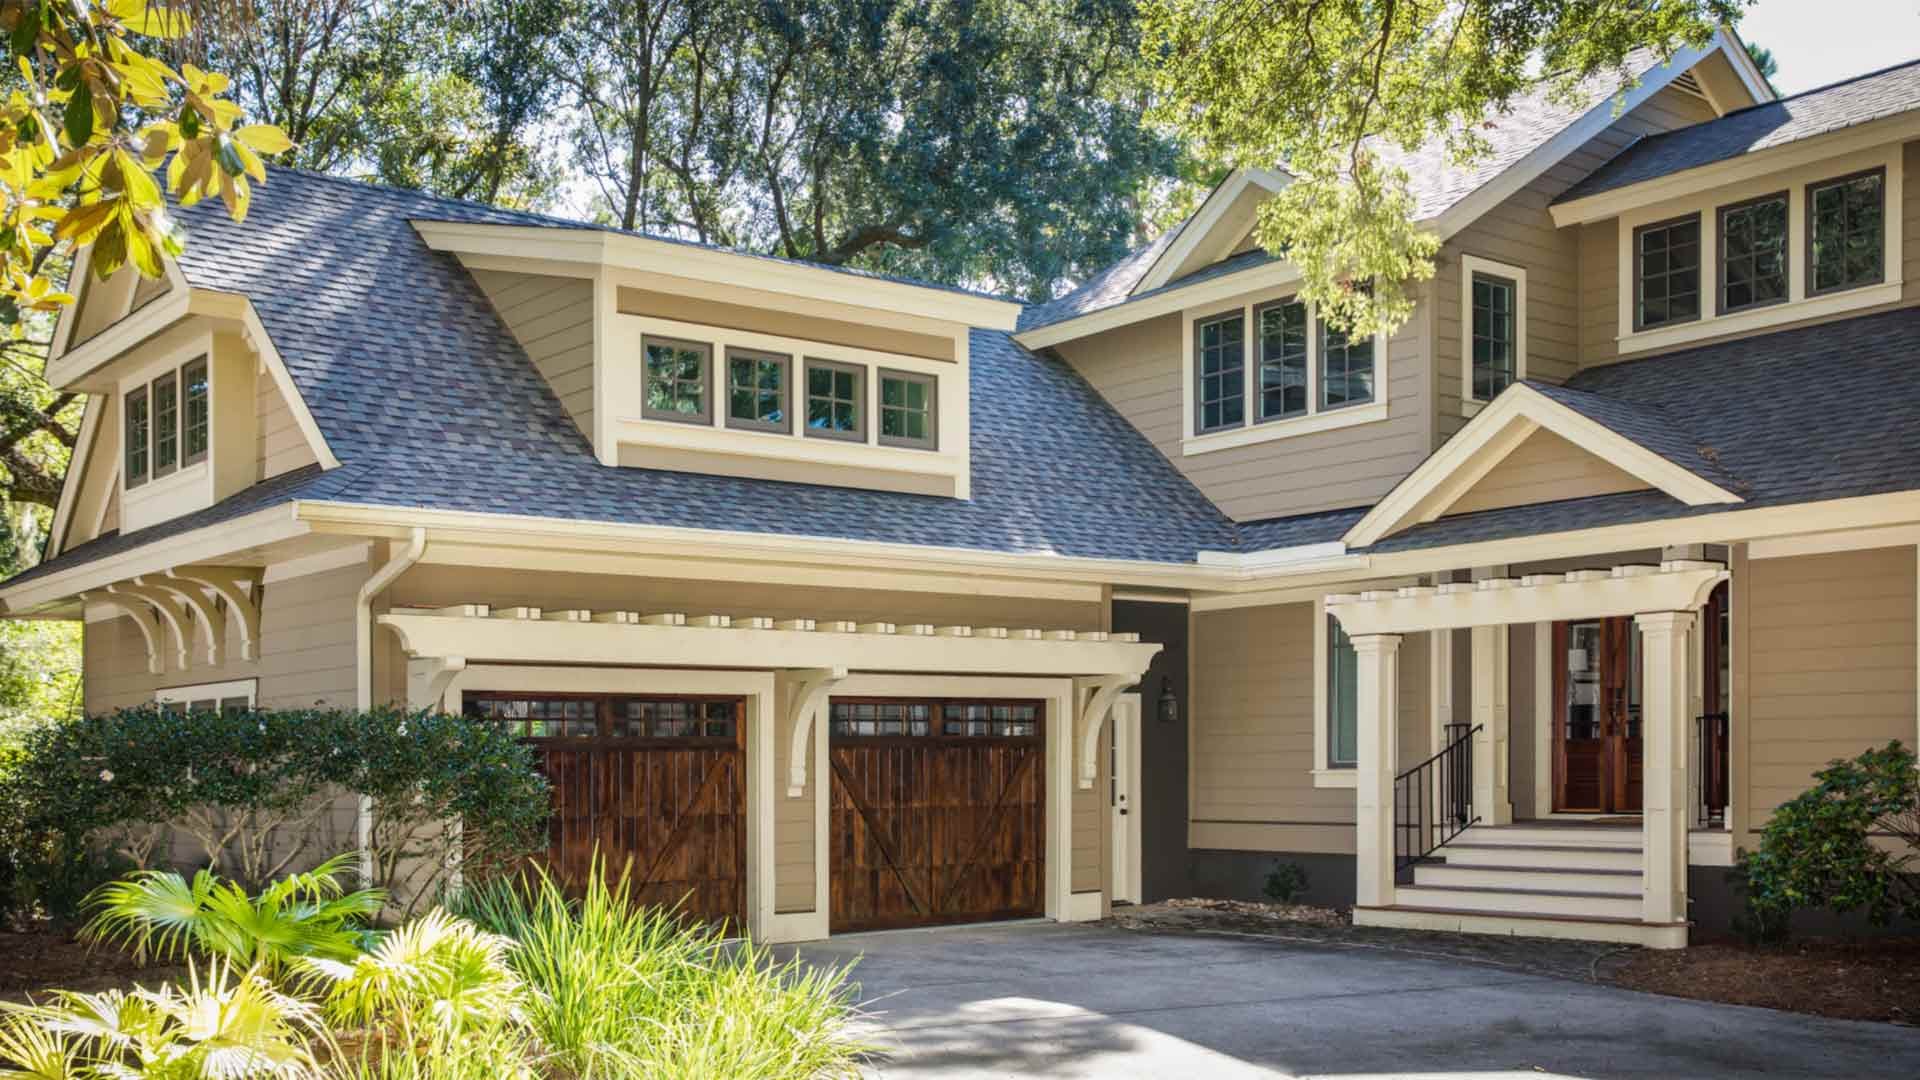 Commonwealth contracting charleston new home builder for Home builder company